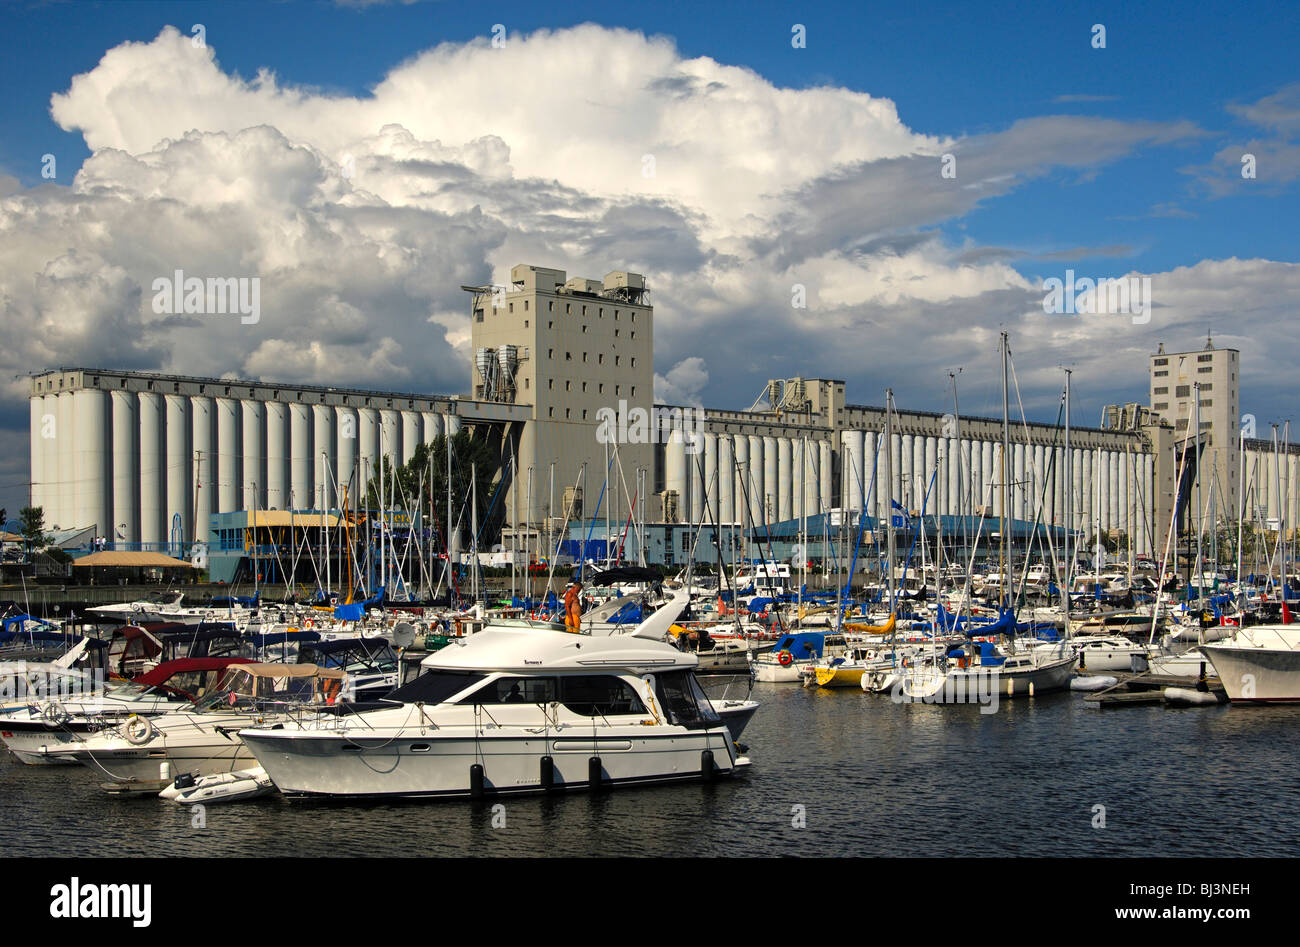 Marina, in the back a grain silo of the Bunge company in the port of Quebec City, Canada - Stock Image